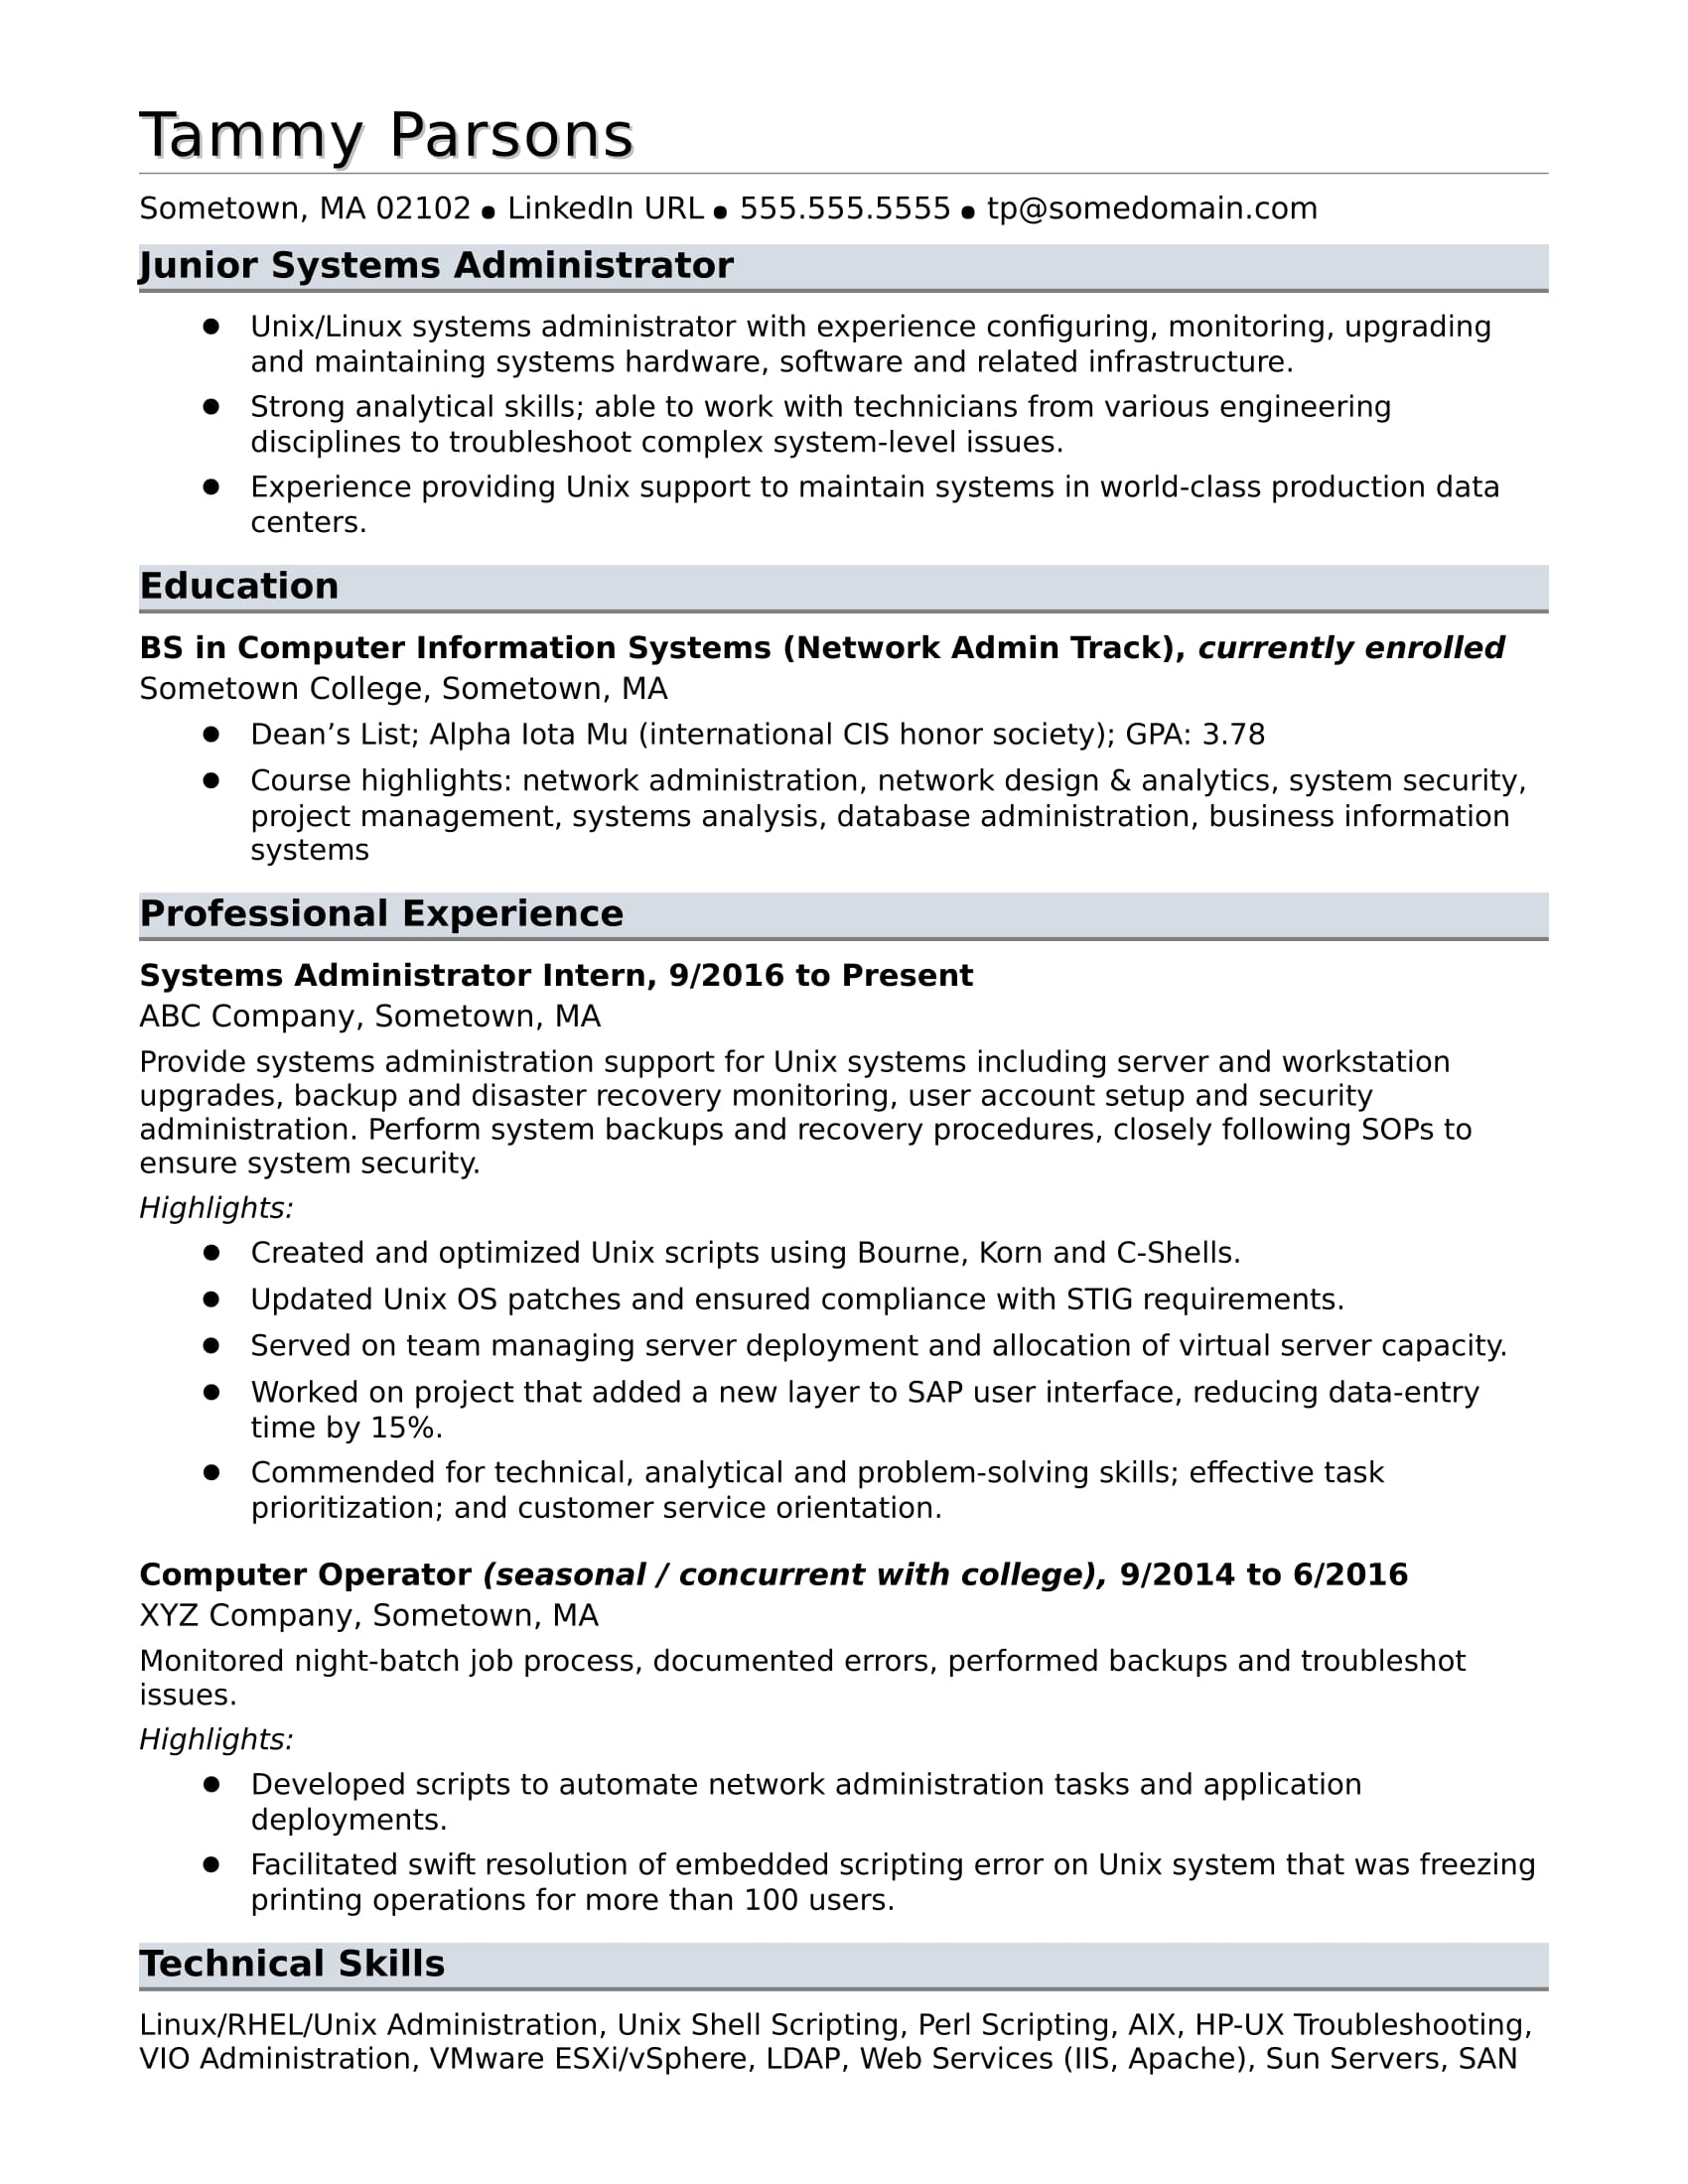 sample resume for an entry level systems administrator - Linux Administrator Resume